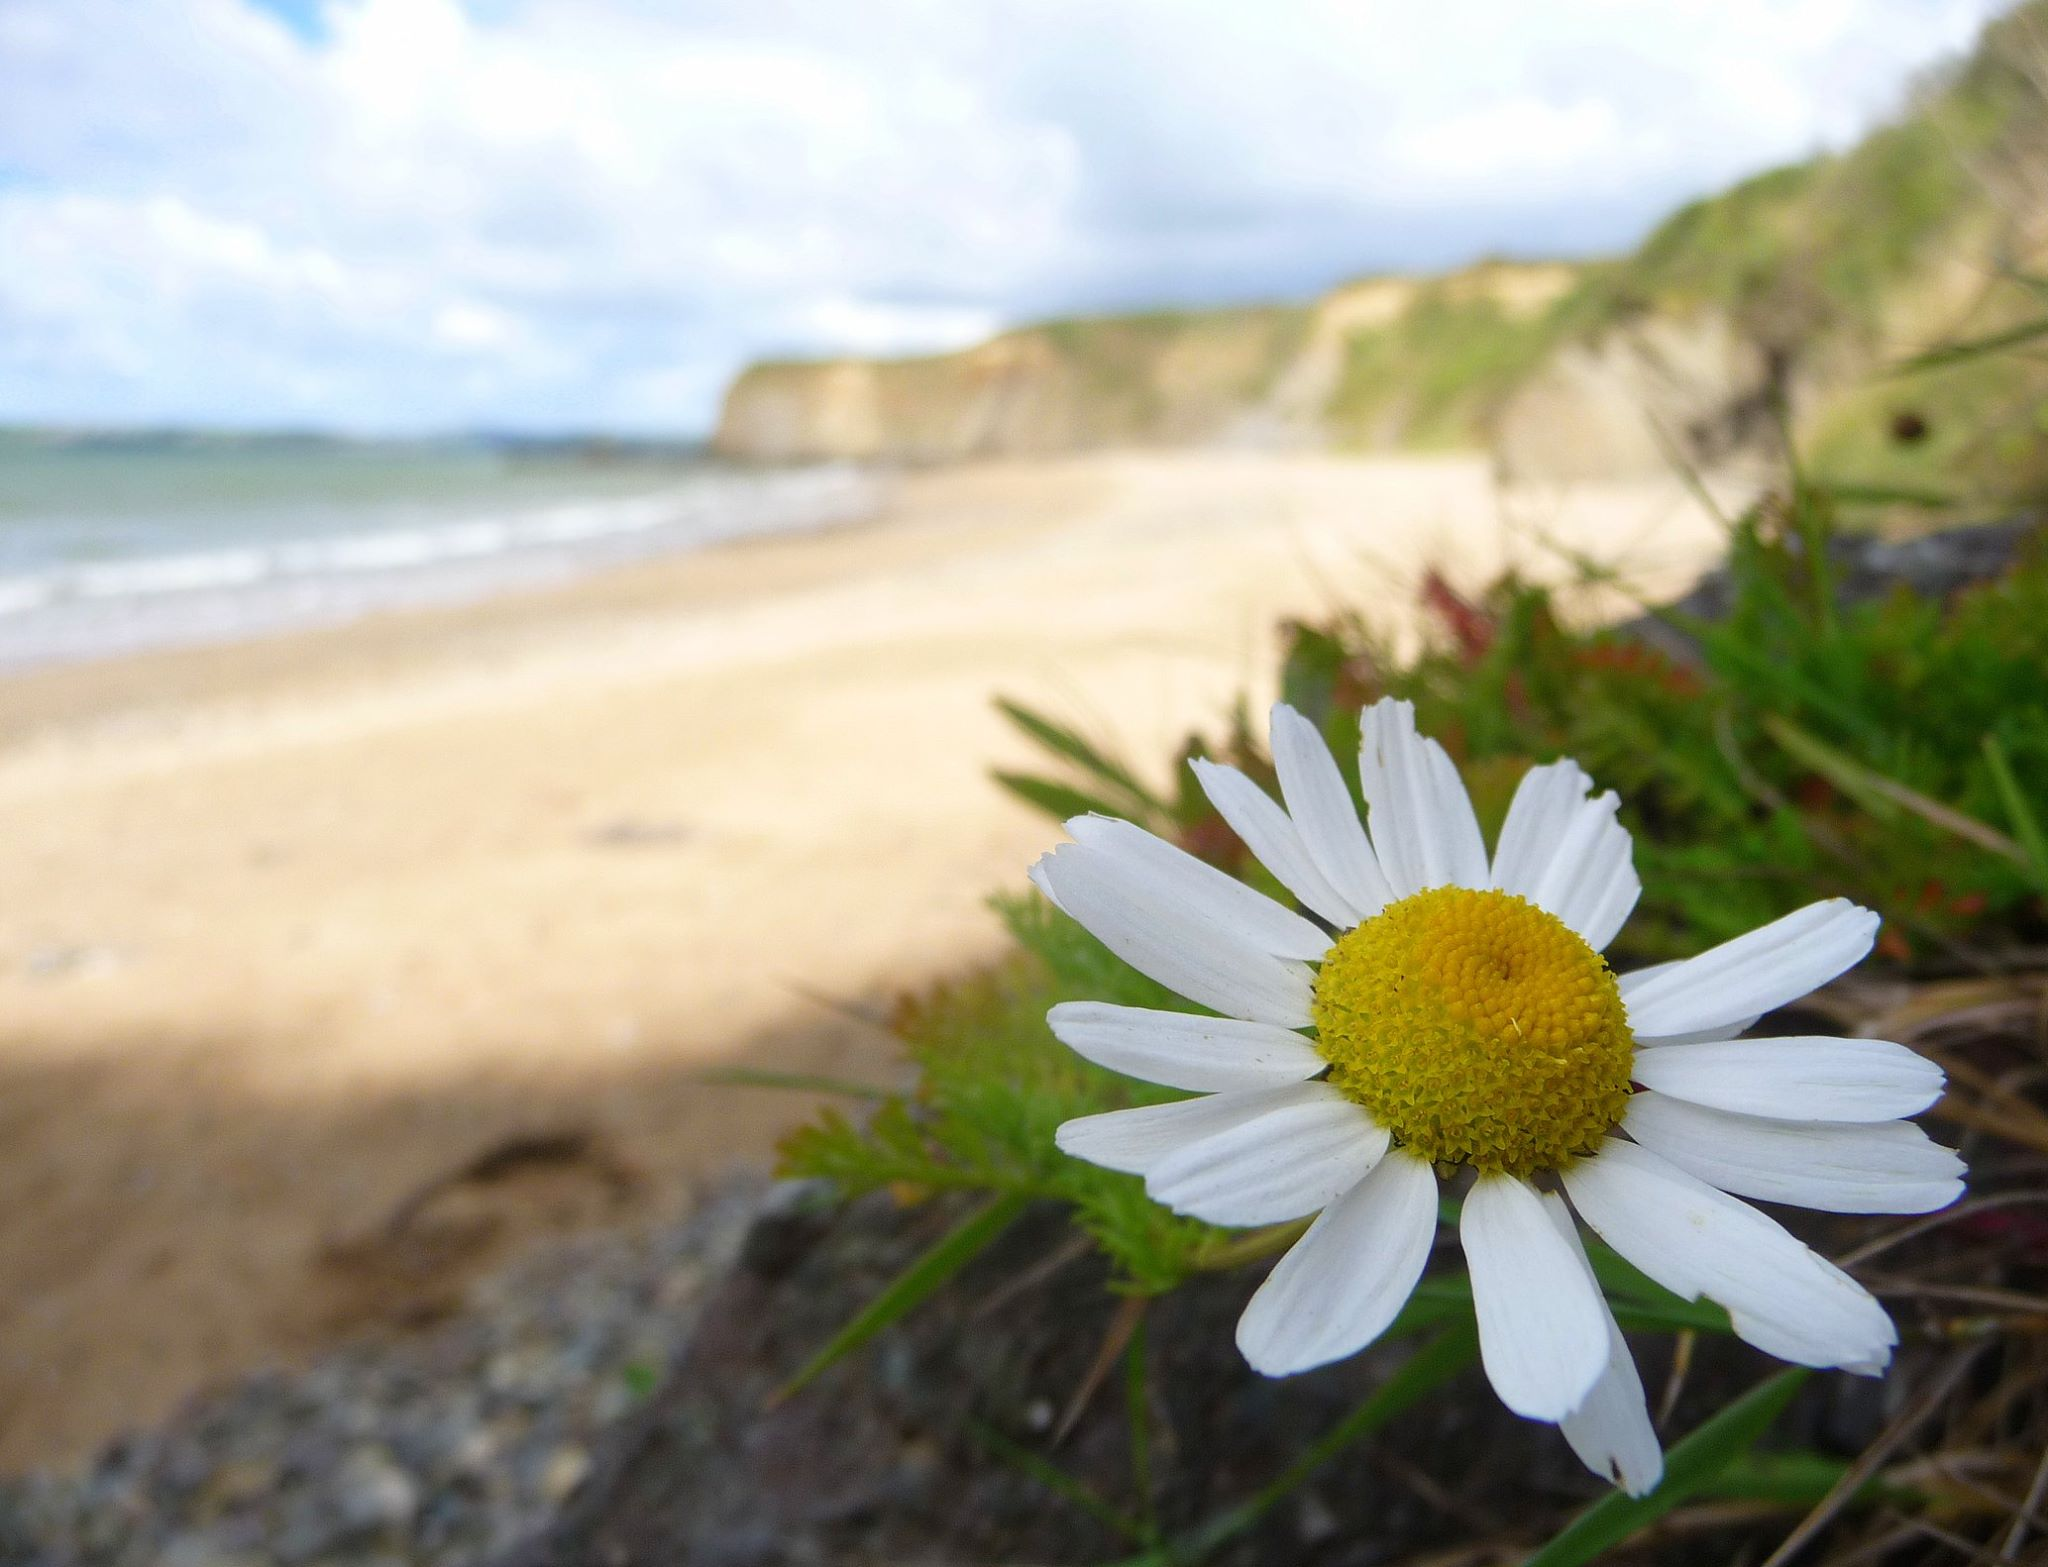 A close up of a daisy like flower with a beach in the background.